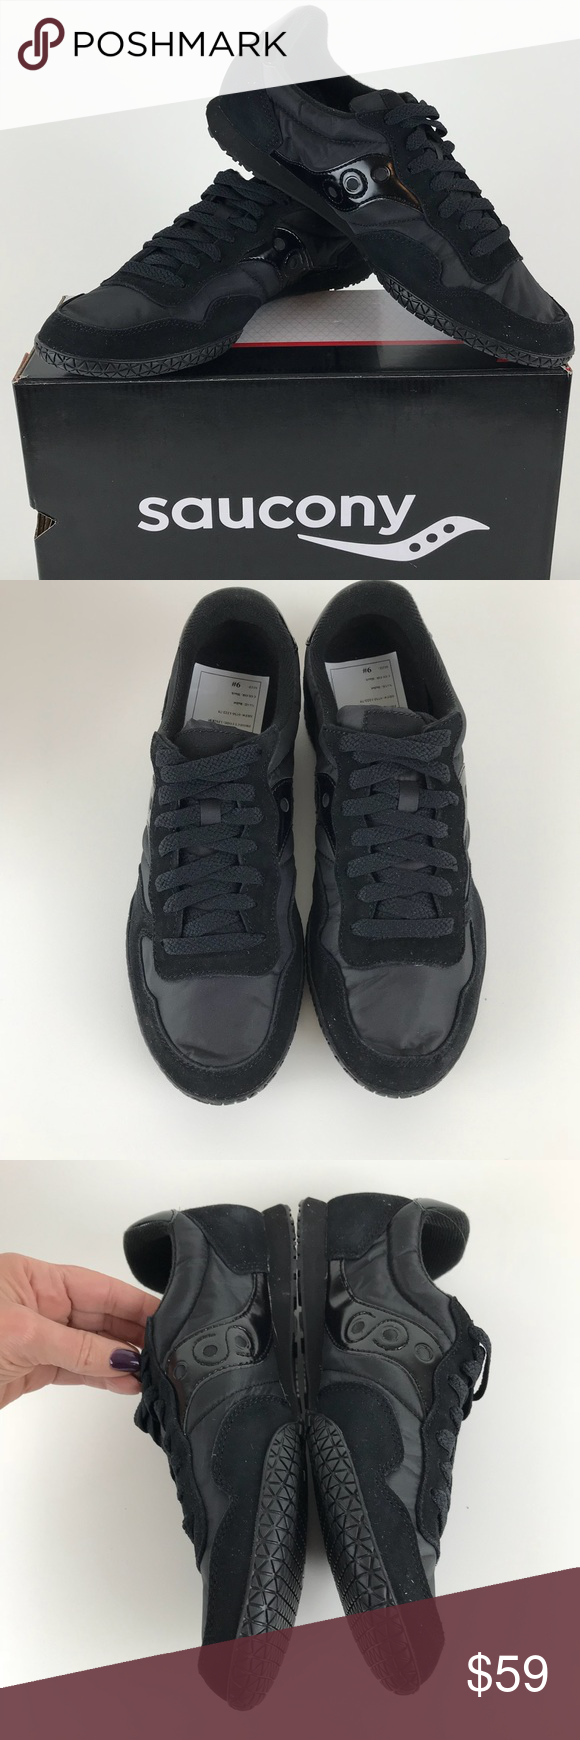 e6a97f14fb03 Saucony MENS Bullet Retro Sneaker Black Black Black on black with patent  accents New sample